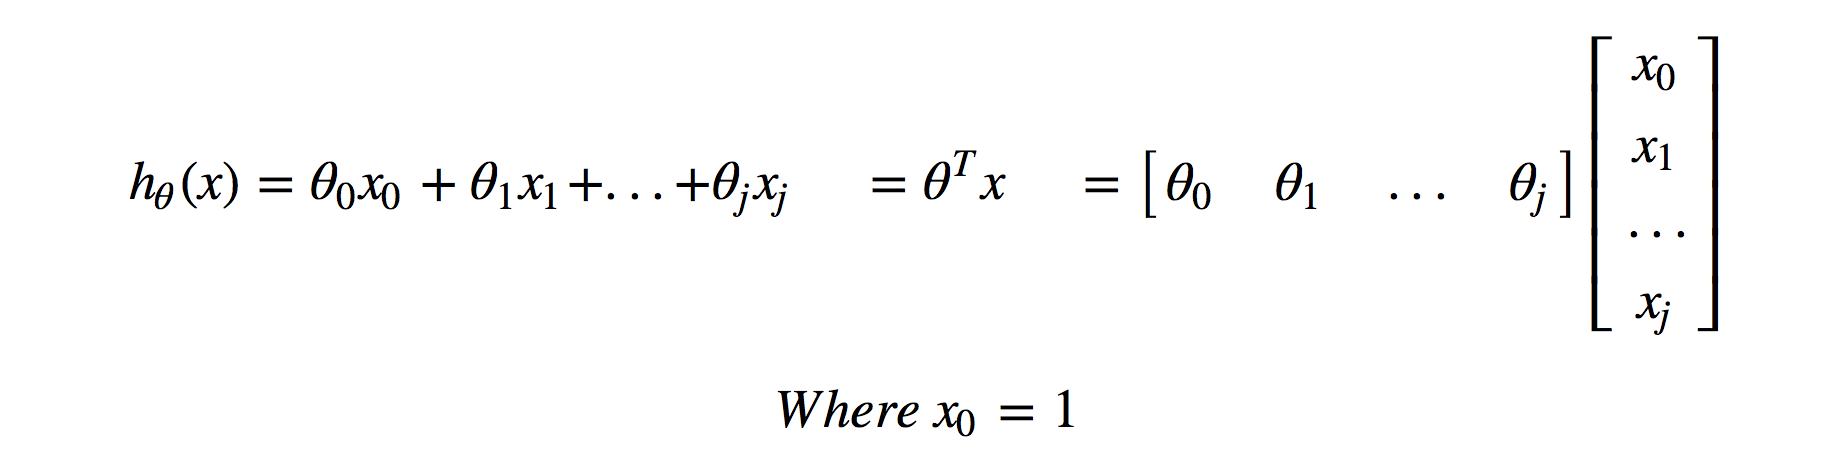 Loss Function (Part II): Logistic Regression - Towards Data